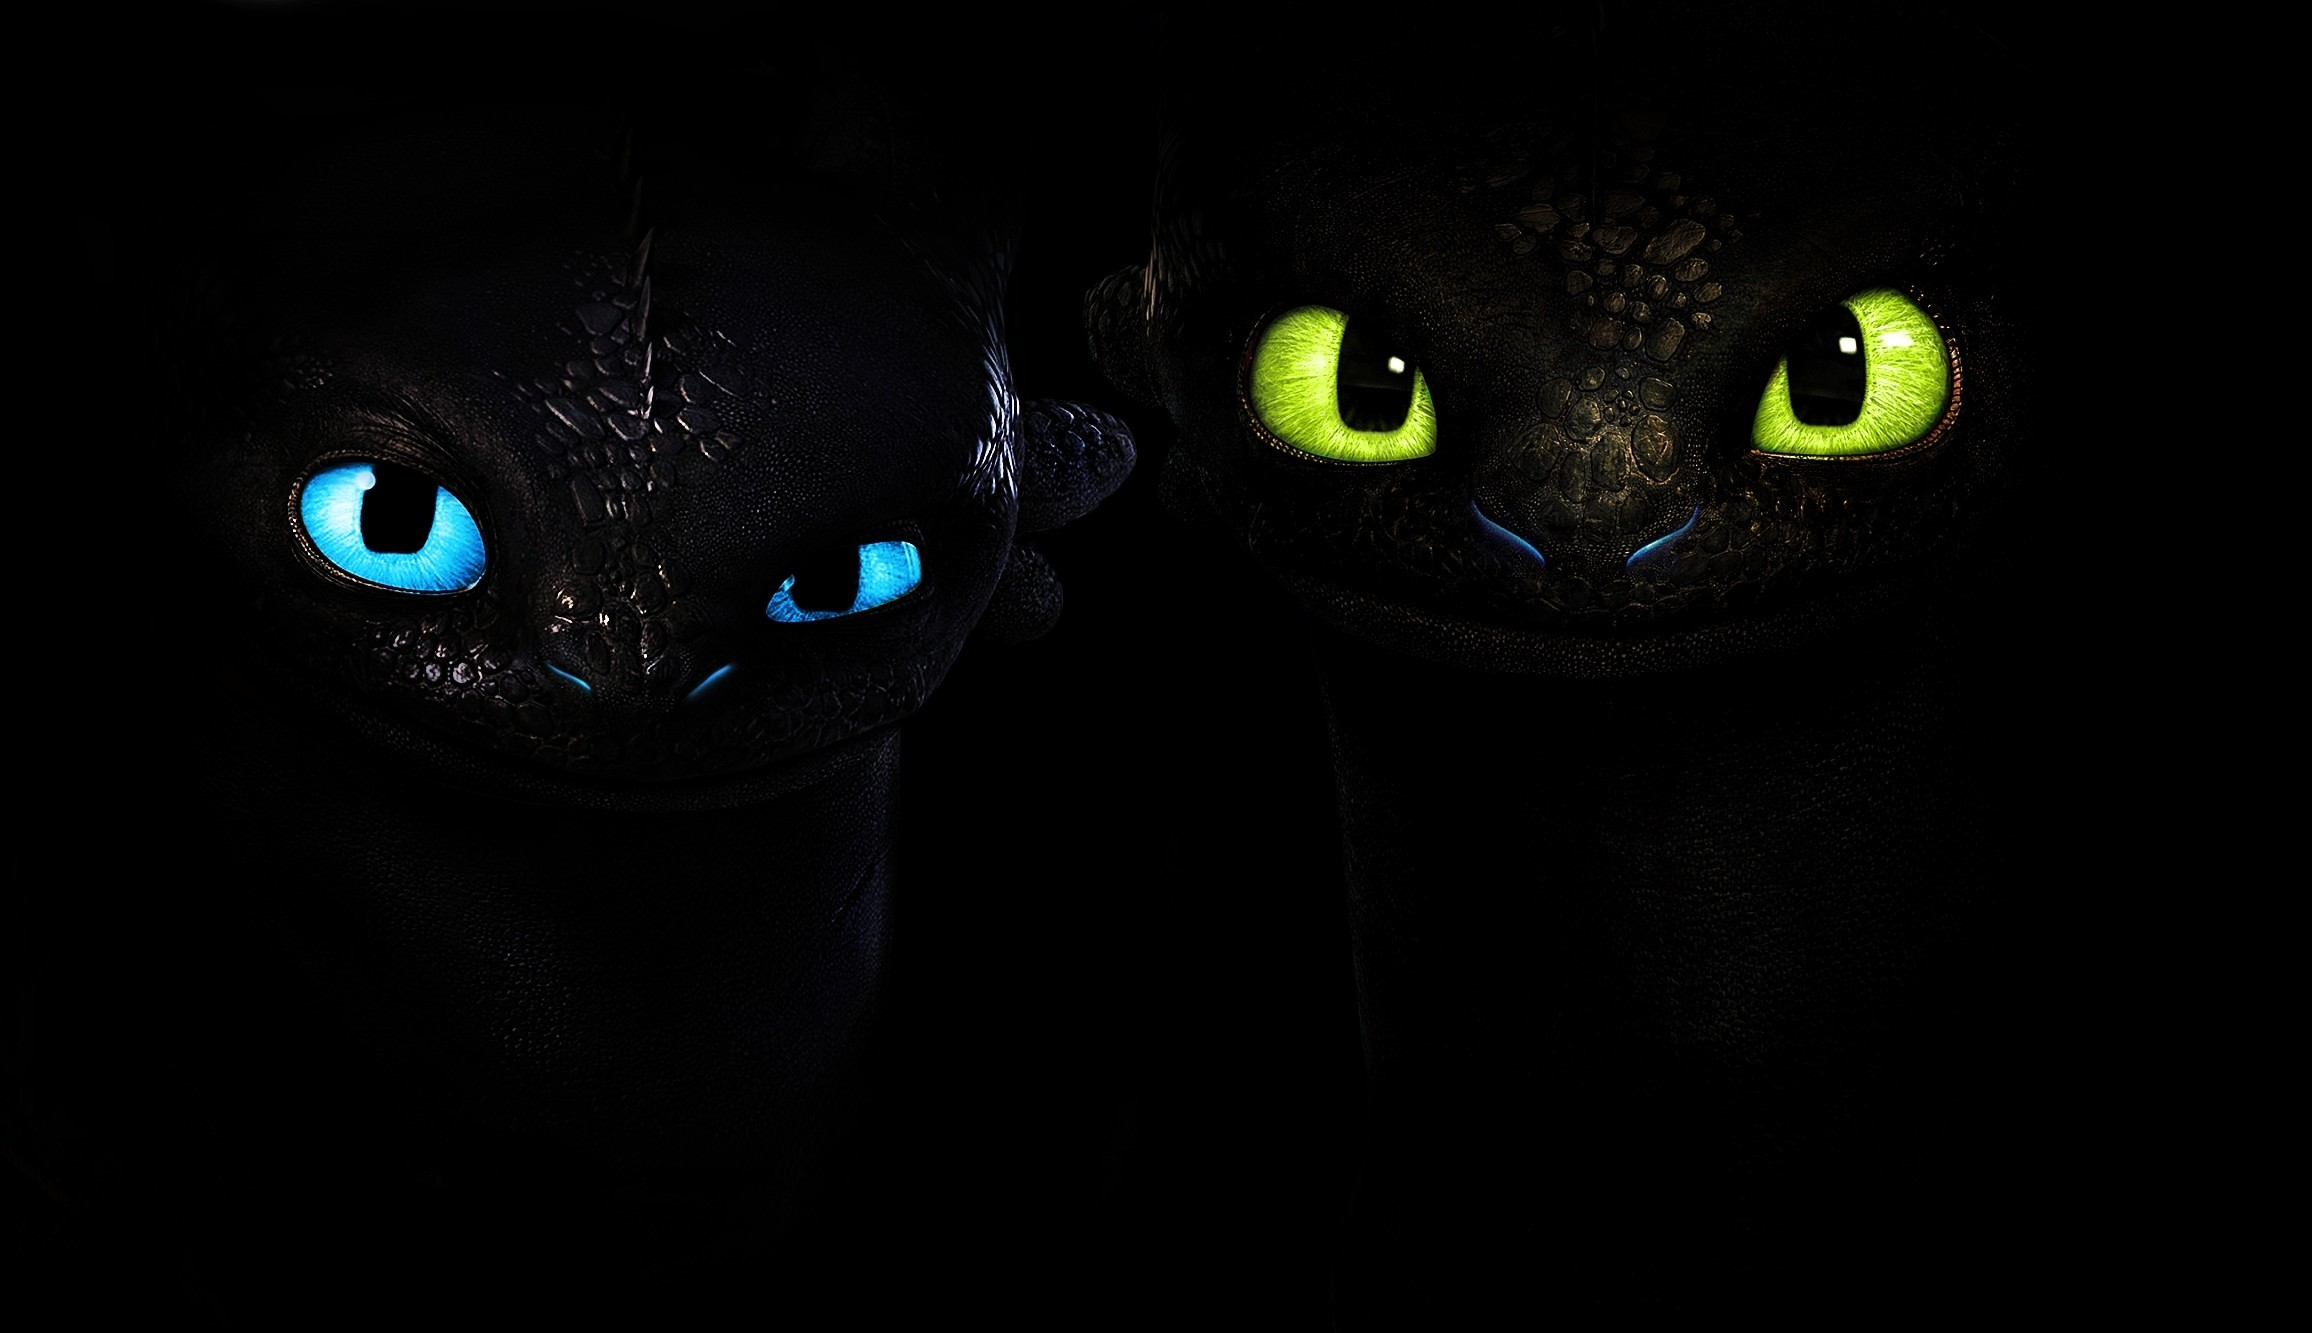 Wallpapers How to Train Your Dragon Glance Black background